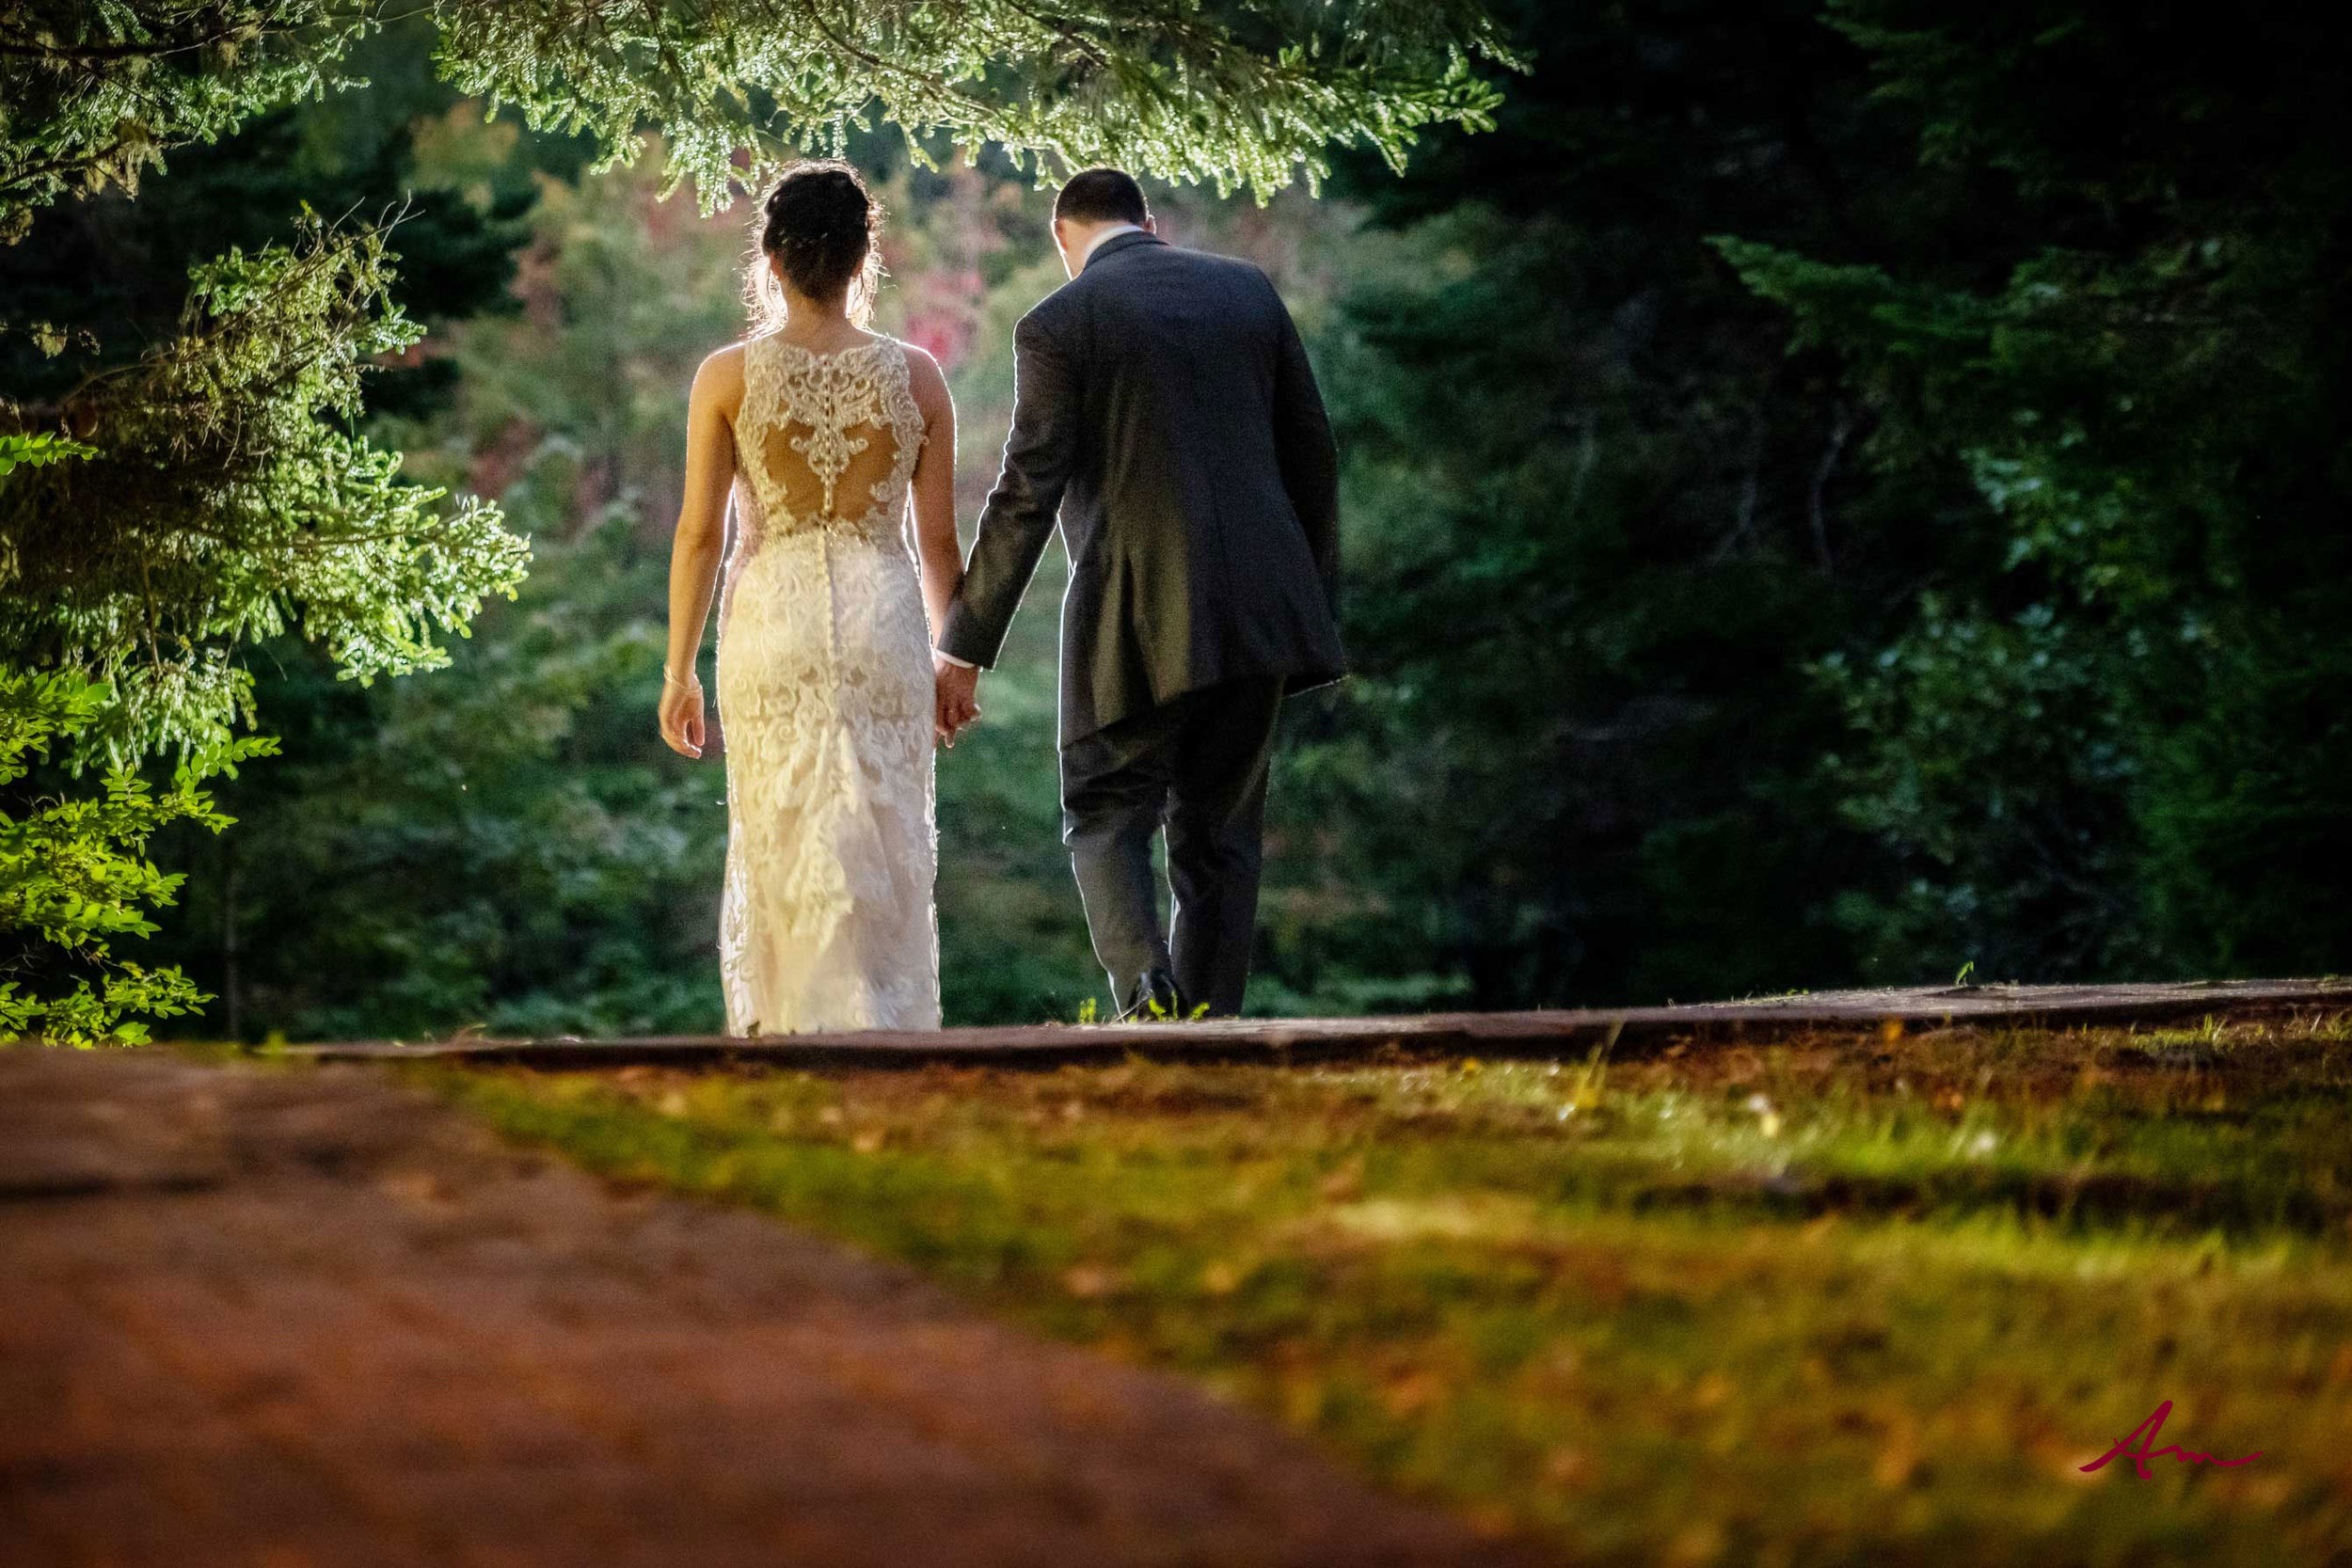 Liscombe-wedding-bride-groom-walk-away.jpg